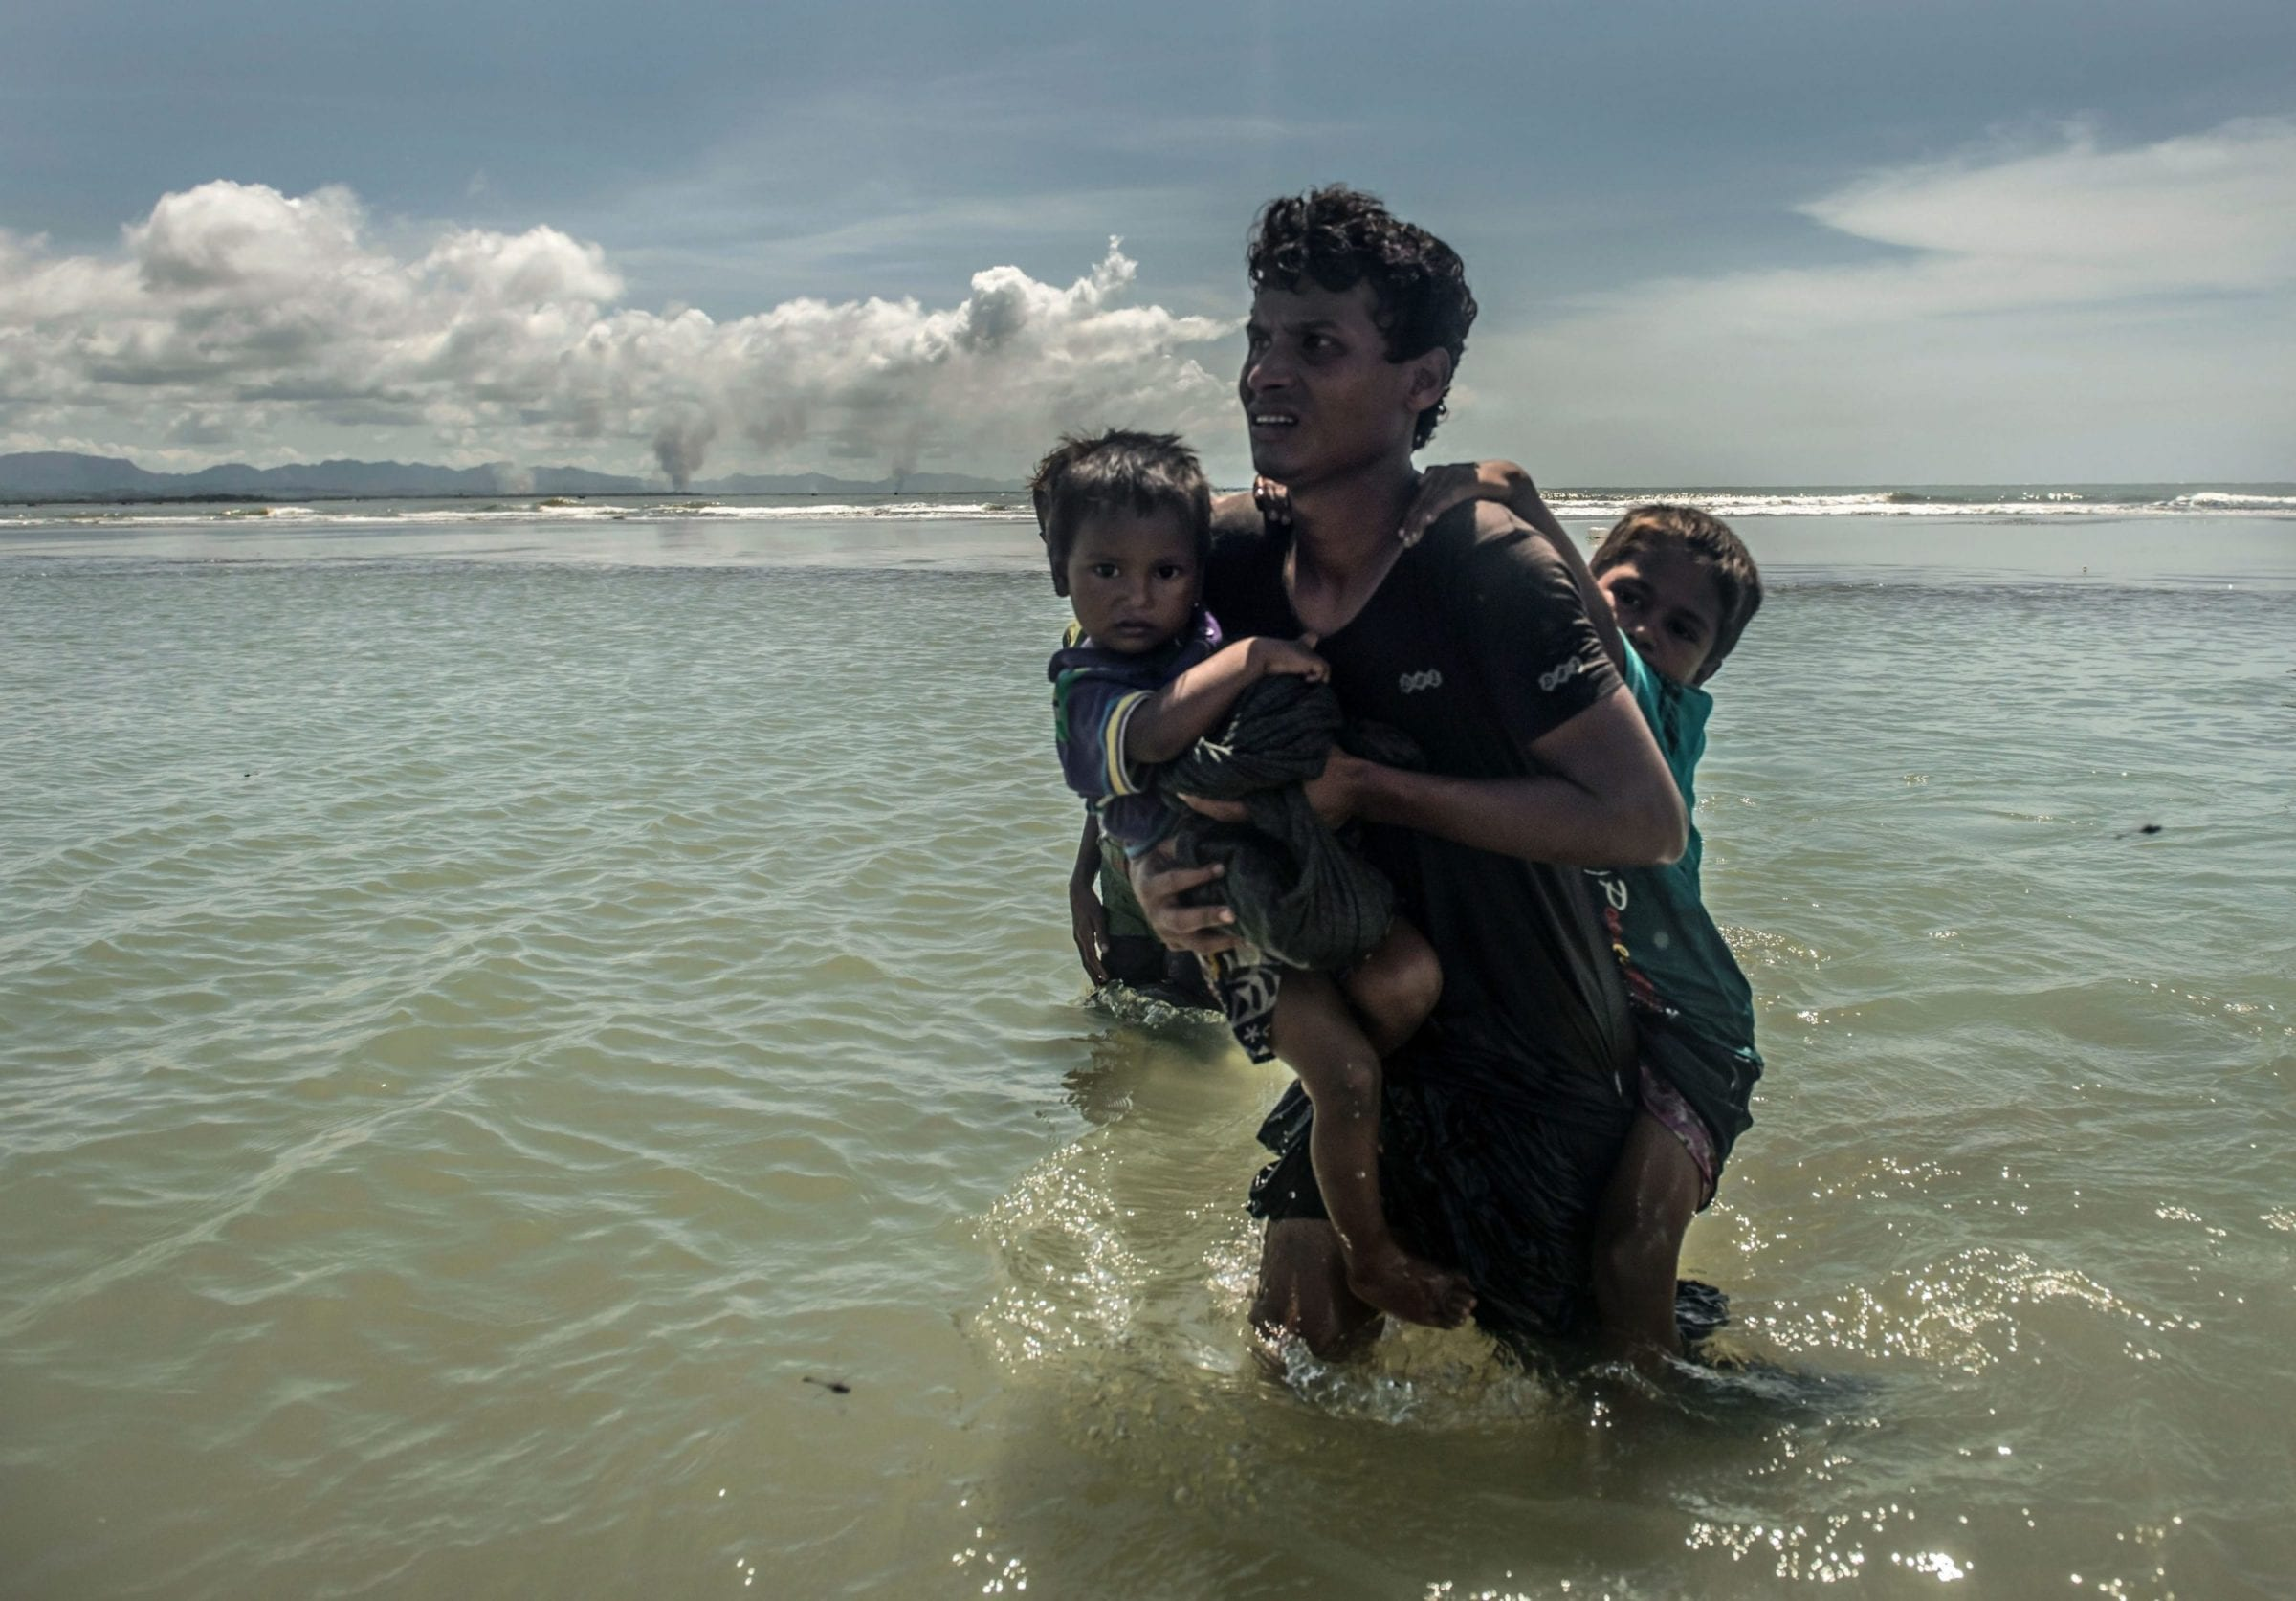 Rohingya refugees from Mongdu district in Myanmar arrive on the Bangladeshi island of Shah Porir Dwip after fleeing violence at home.